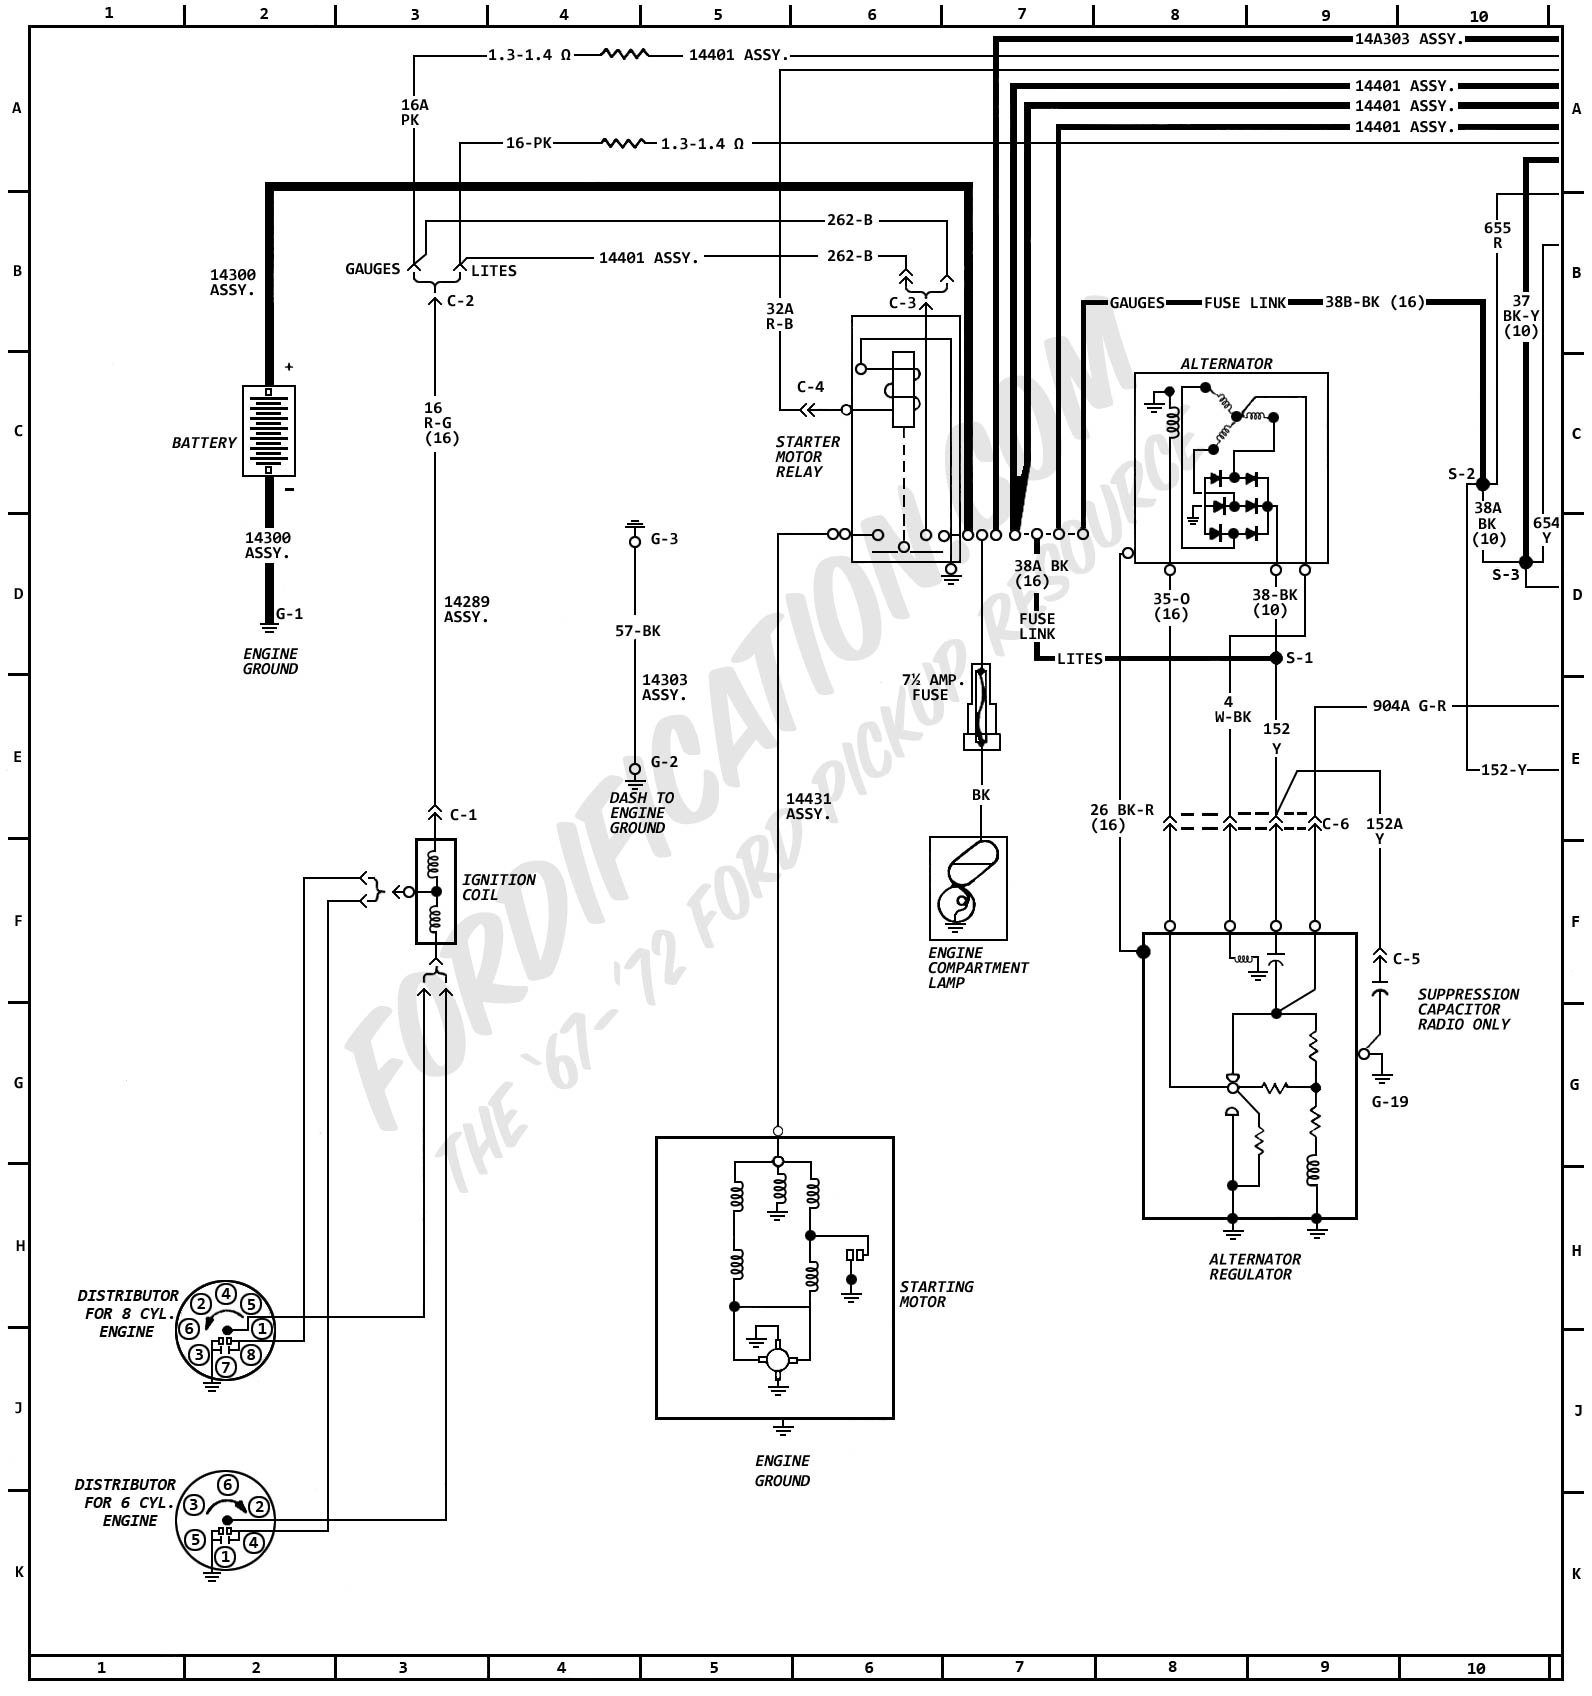 1972 chevy truck ignition wiring diagram 2000 honda civic audio ford diagrams fordification